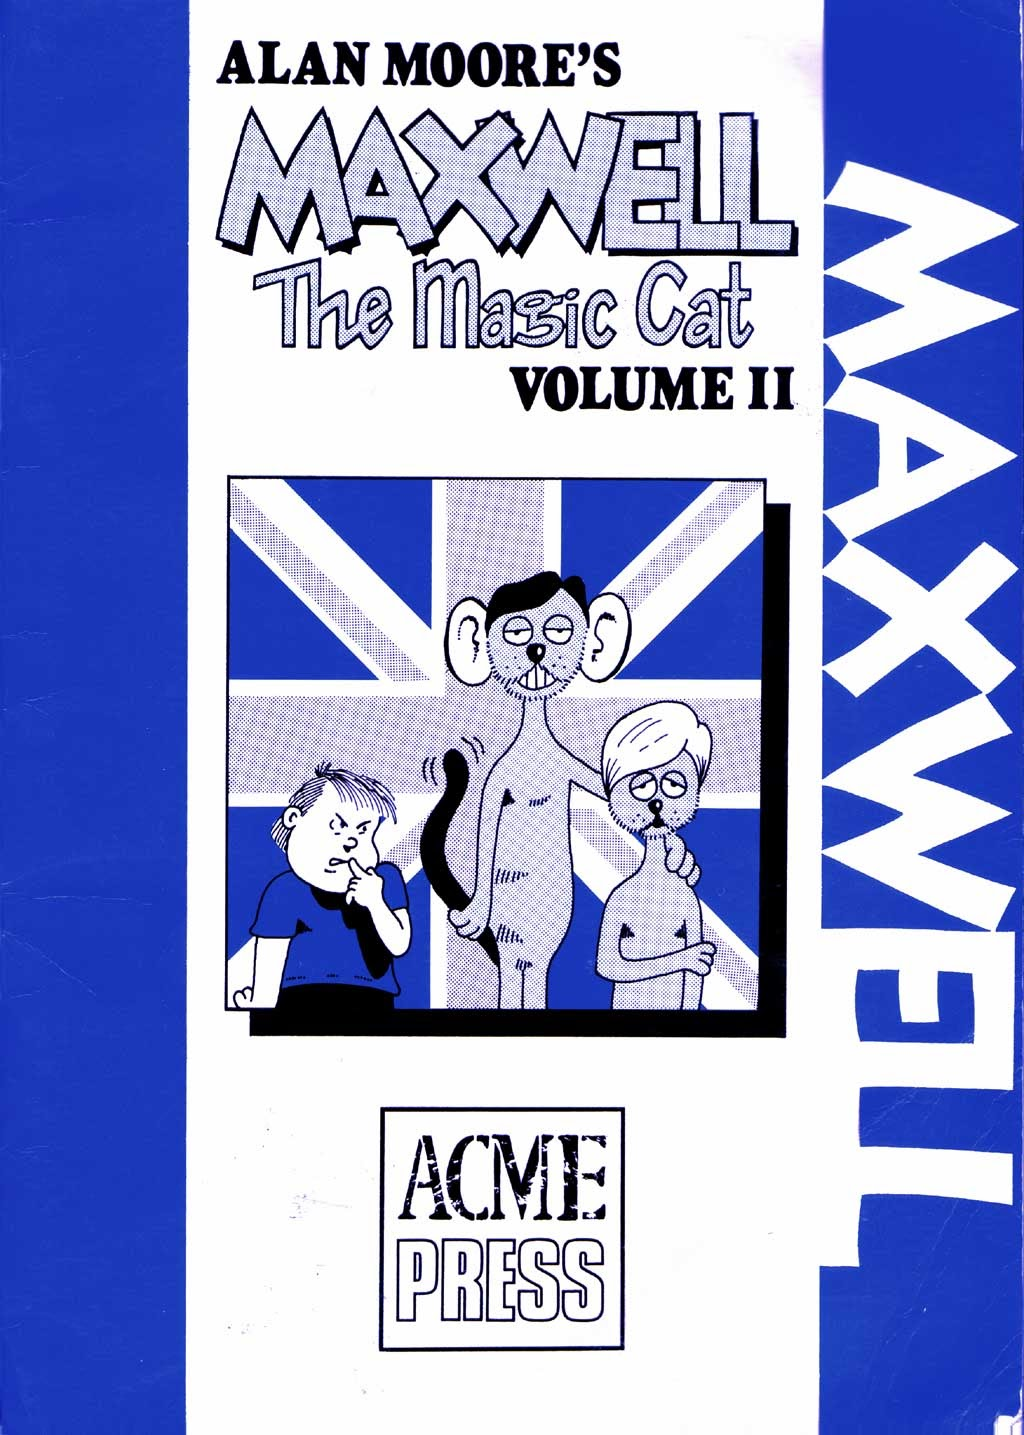 Read online Alan Moore's Maxwell the Magic Cat comic -  Issue #2 - 1